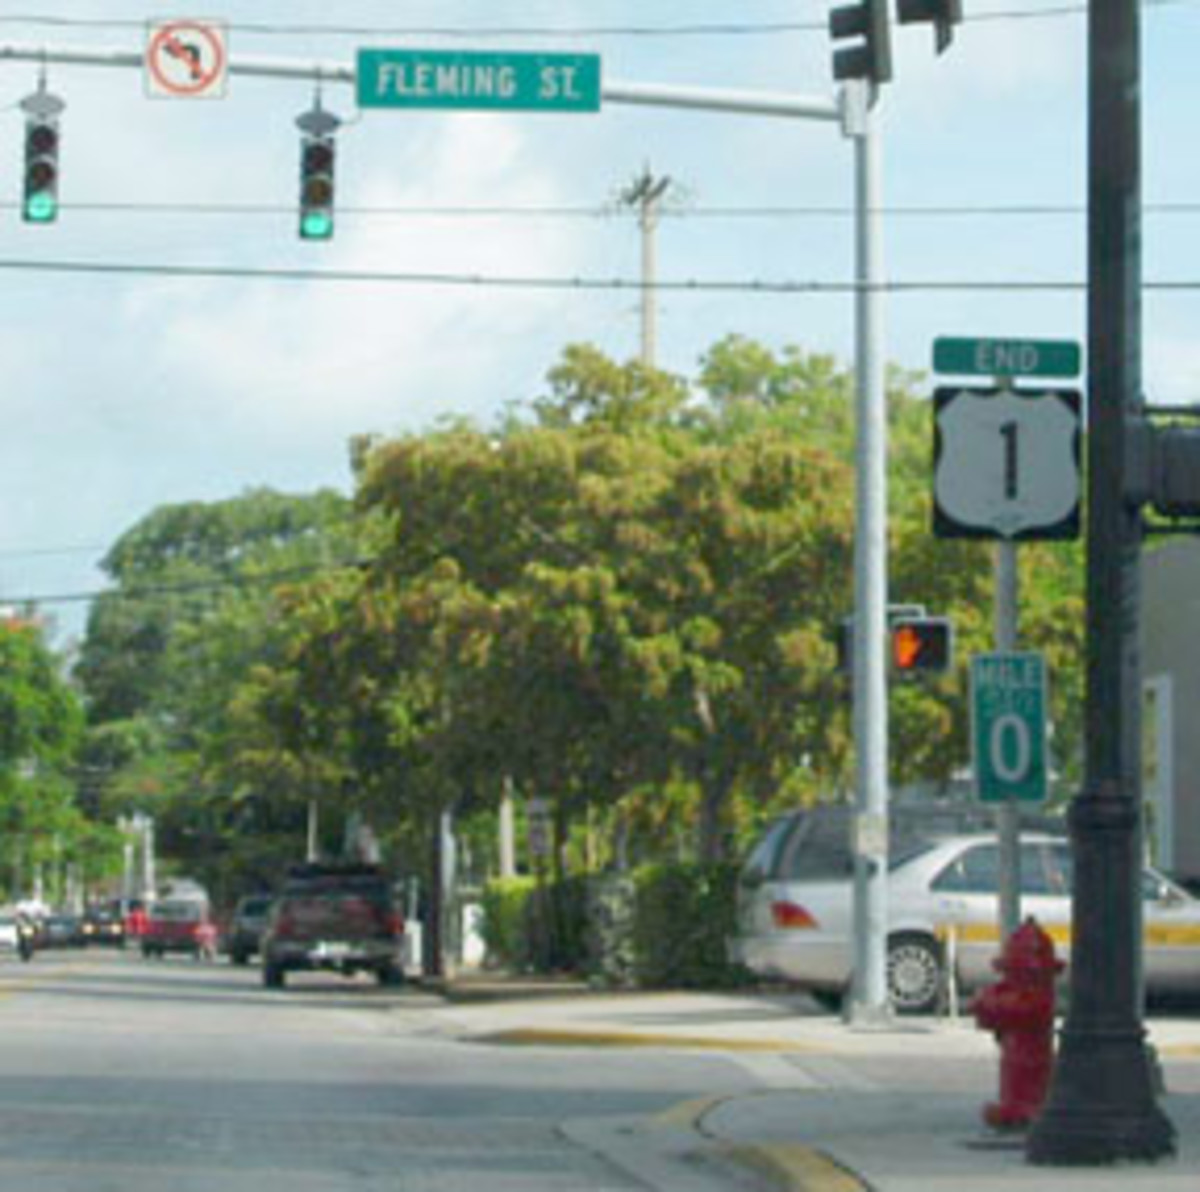 """Mile Marker """"0"""" at the intersection of Whitehead Street and Fleming Street, Key West, Florida."""